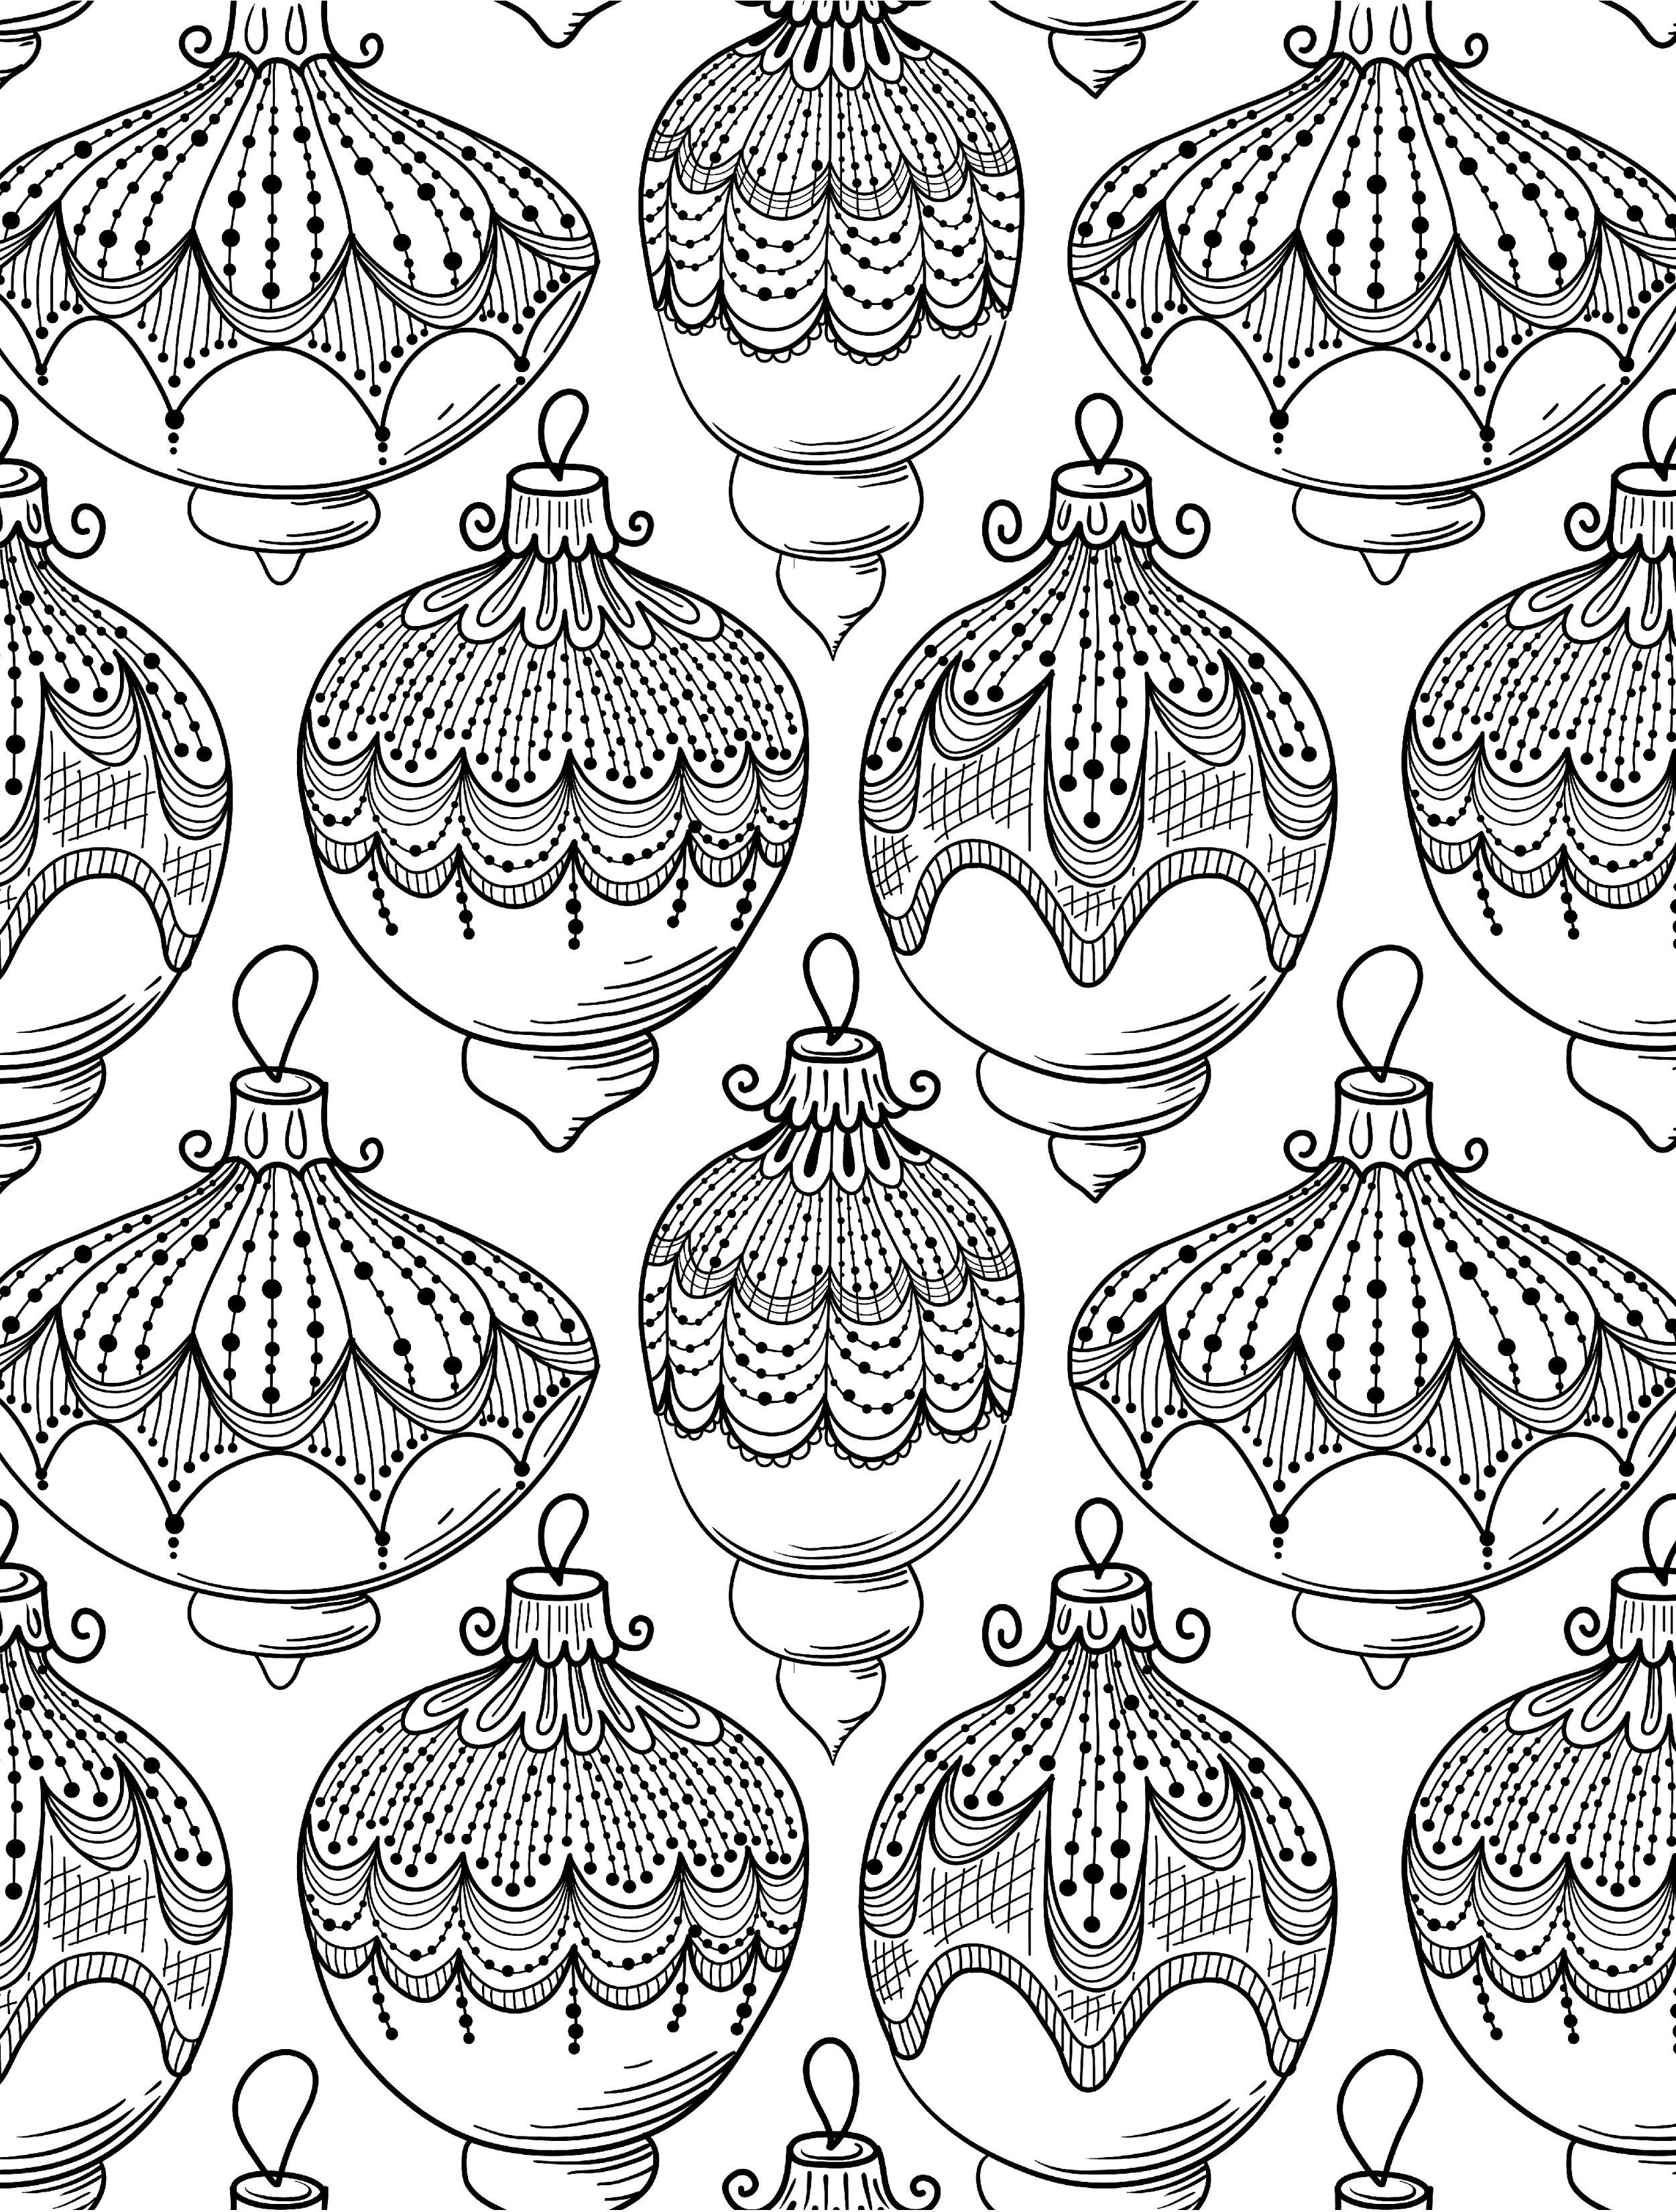 10 Free Printable Holiday Adult Coloring Pages | Colorear, Mandalas ...